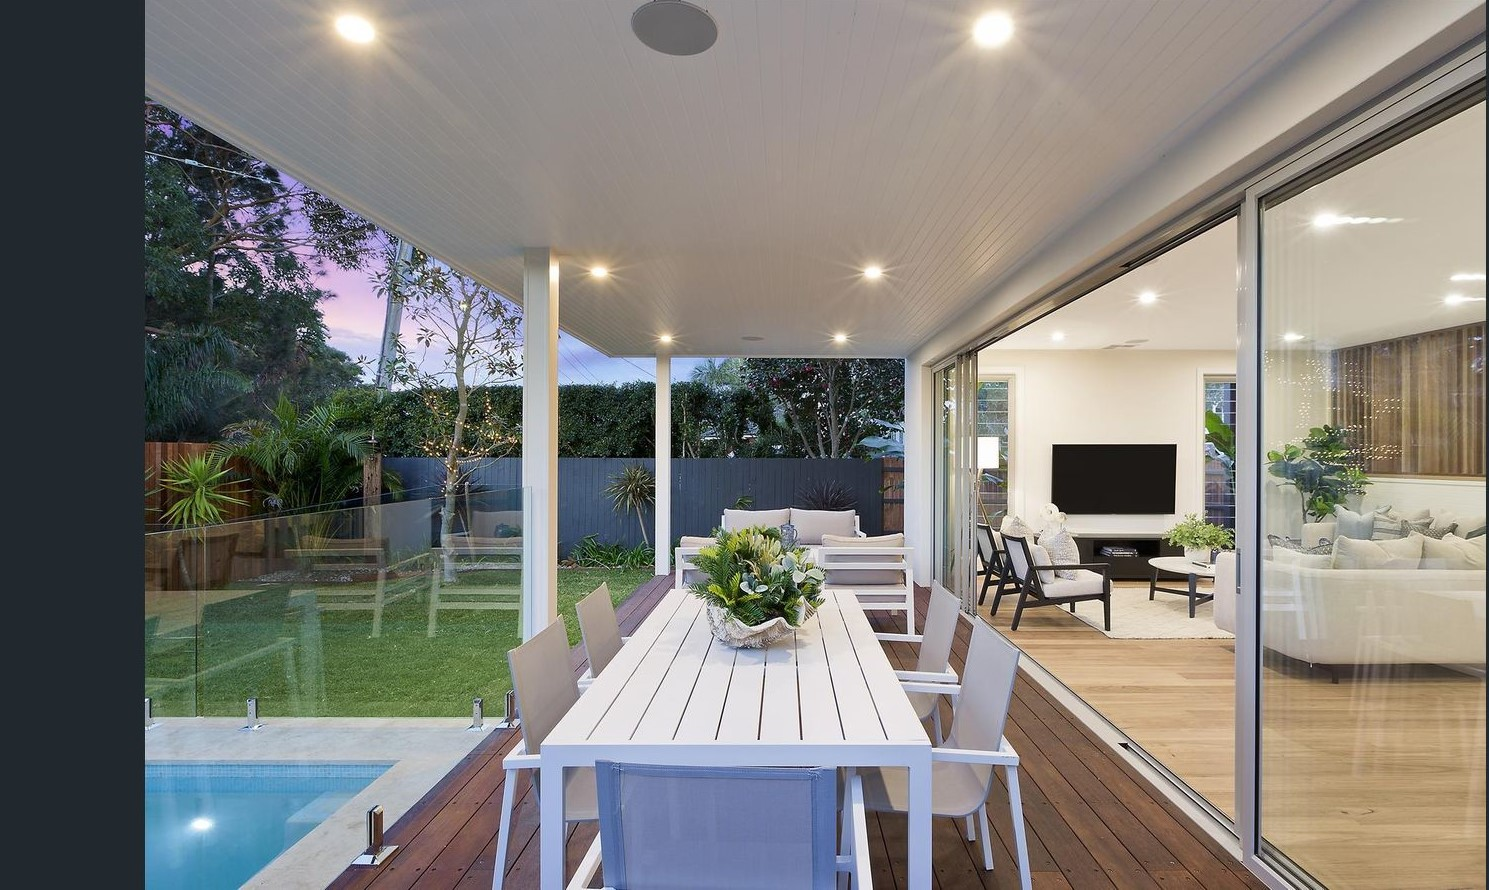 Travers.rd.outdoor.entertaining.styling.jpg